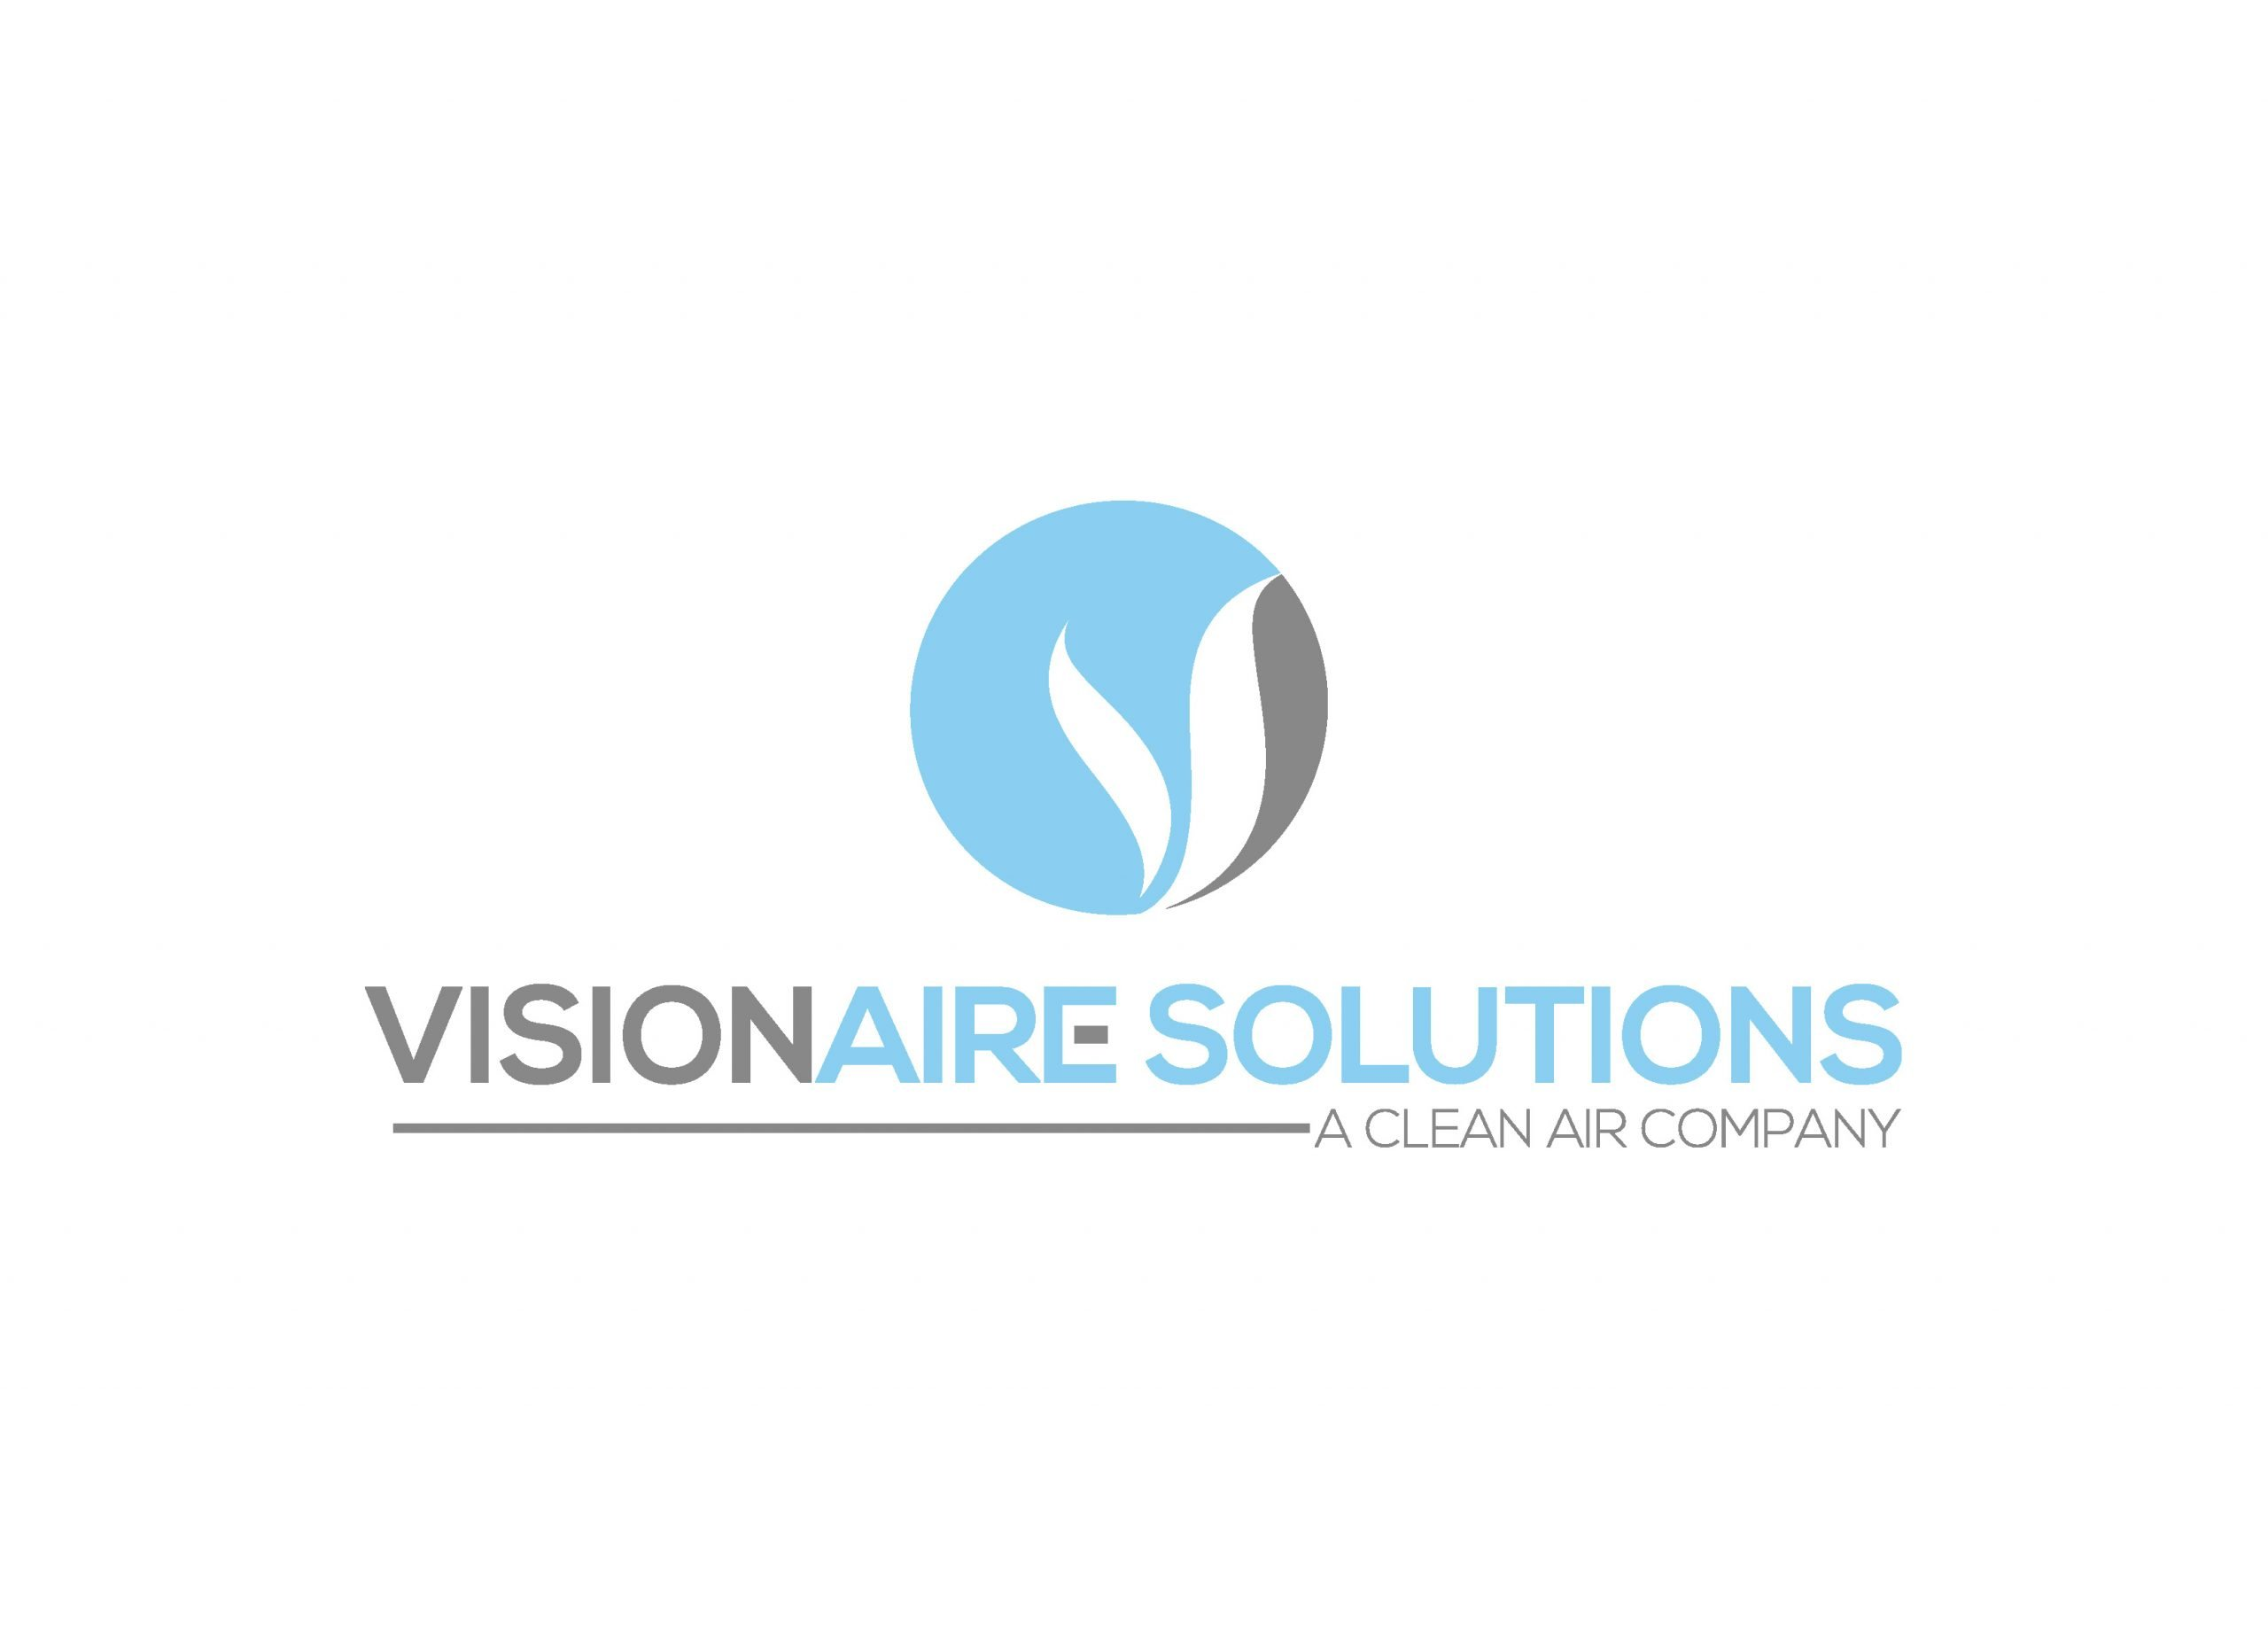 VisionAire Solutions